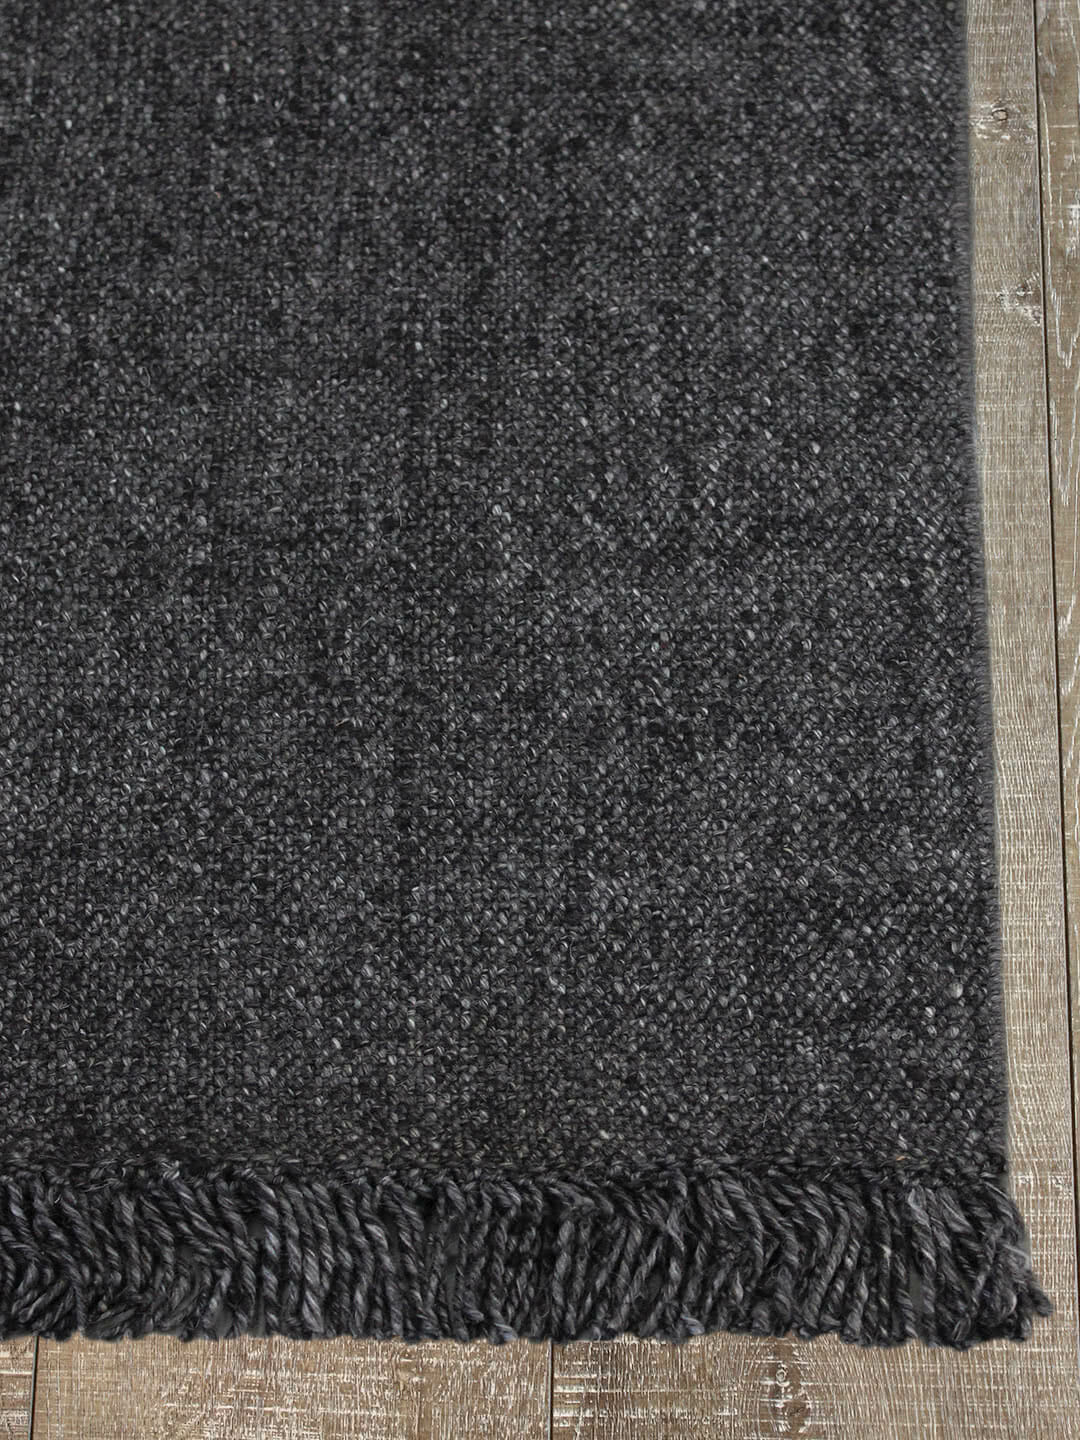 positano-indian-traditional-rug-dark-grey-100-percent-hand-woven-wool